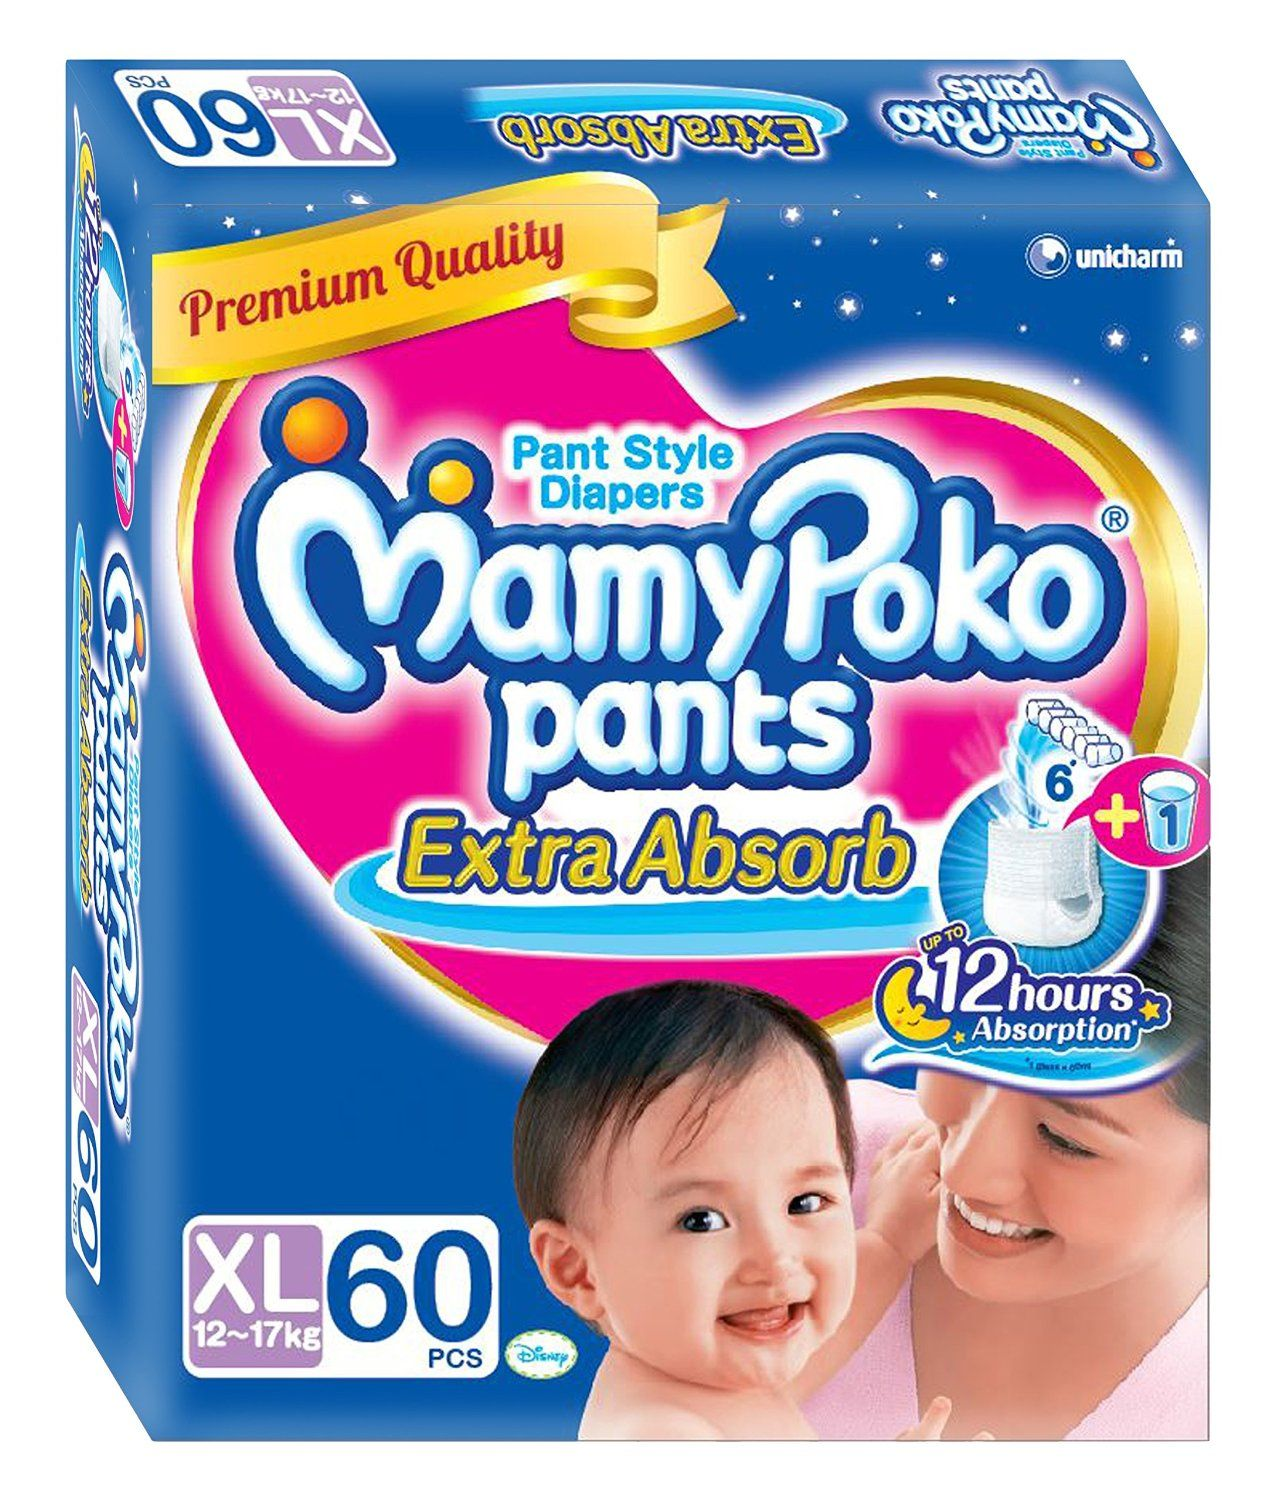 Baby Products Stuff To Buy Pinterest Babies Mamypoko Pants Extra Soft Xl 30 Girls